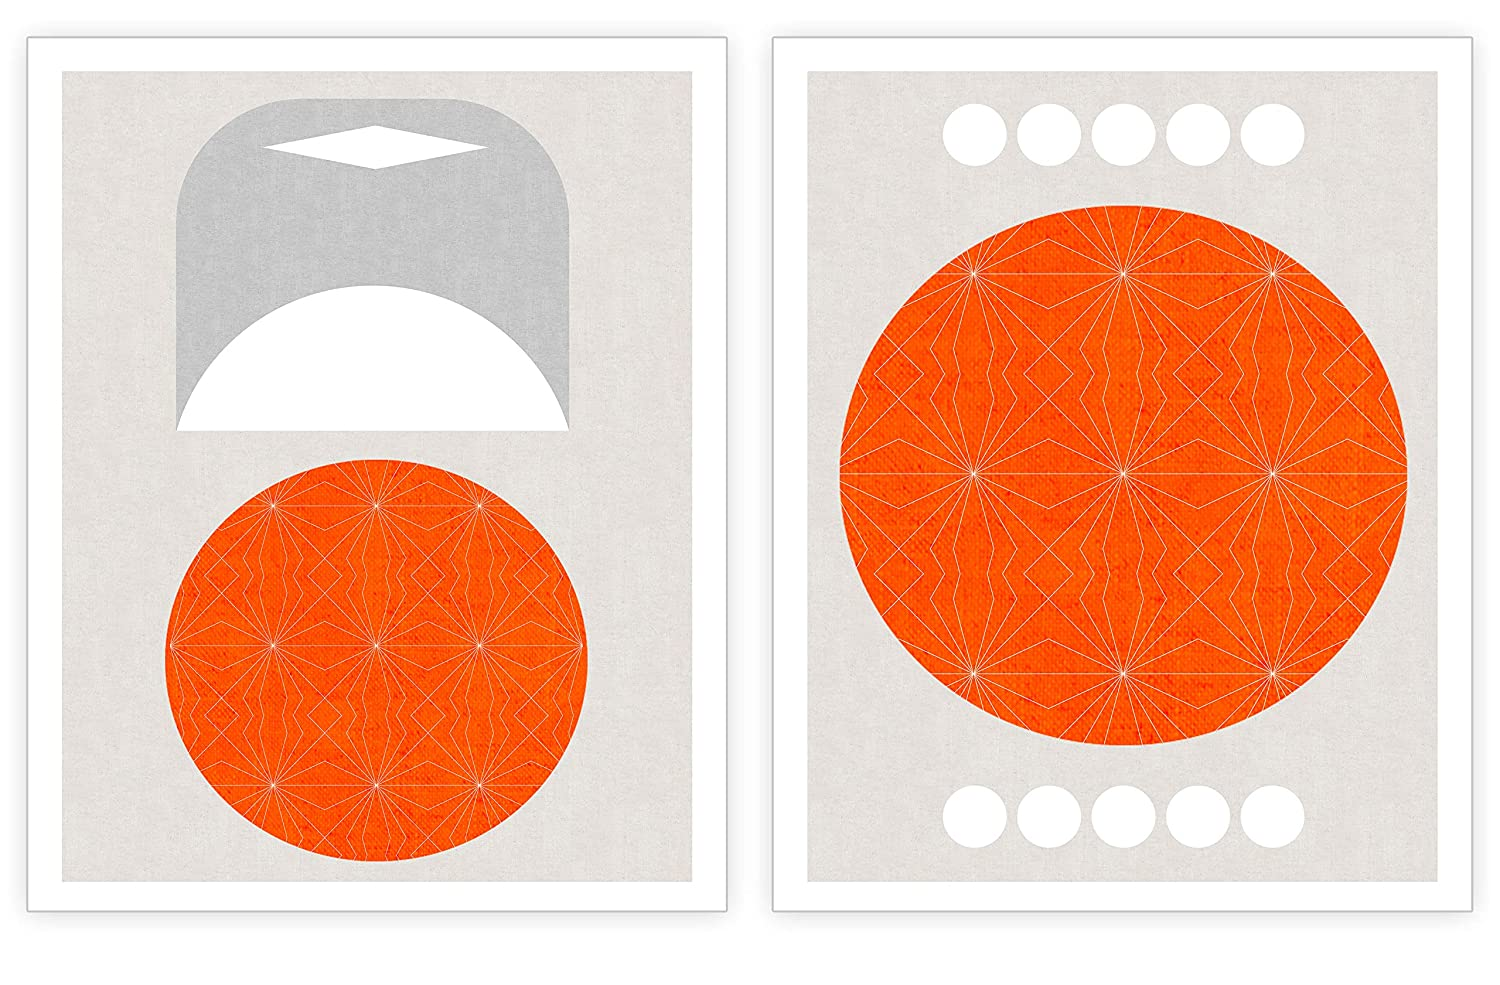 Abstract Shapes Wall Art - Orange Geometric Wall Decor - Modern Art - Rustic Geometry Decorations for Home Office Living Room - Minimalist Accent Artwork- Set of 2 Prints - 8x10 UNFRAMED